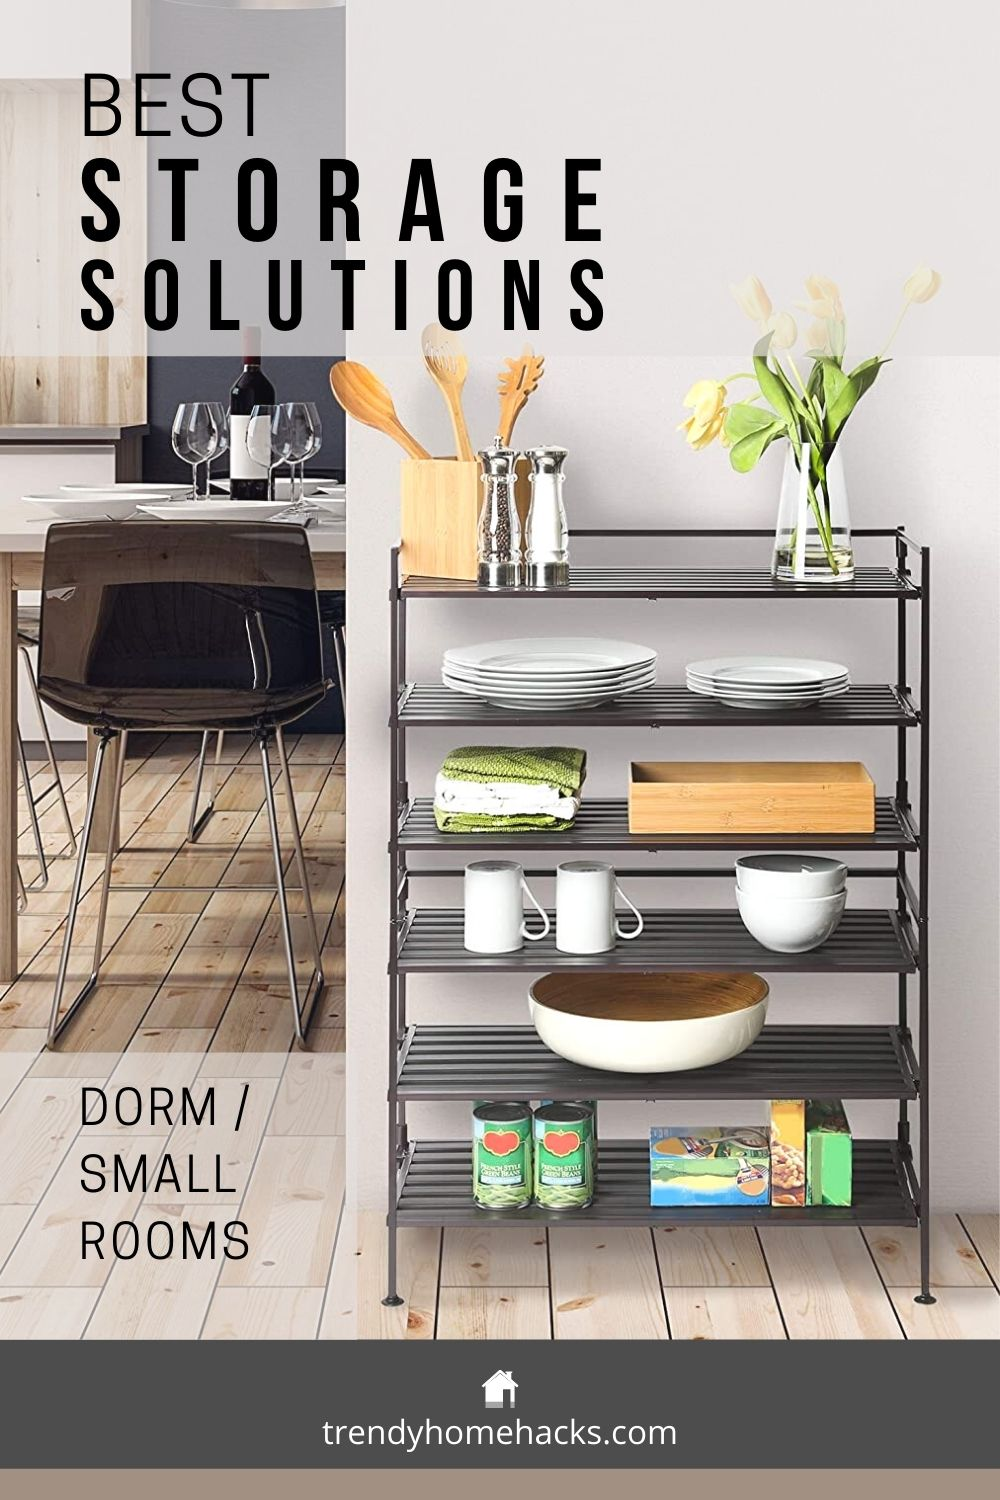 Storage solution for dorm and small rooms